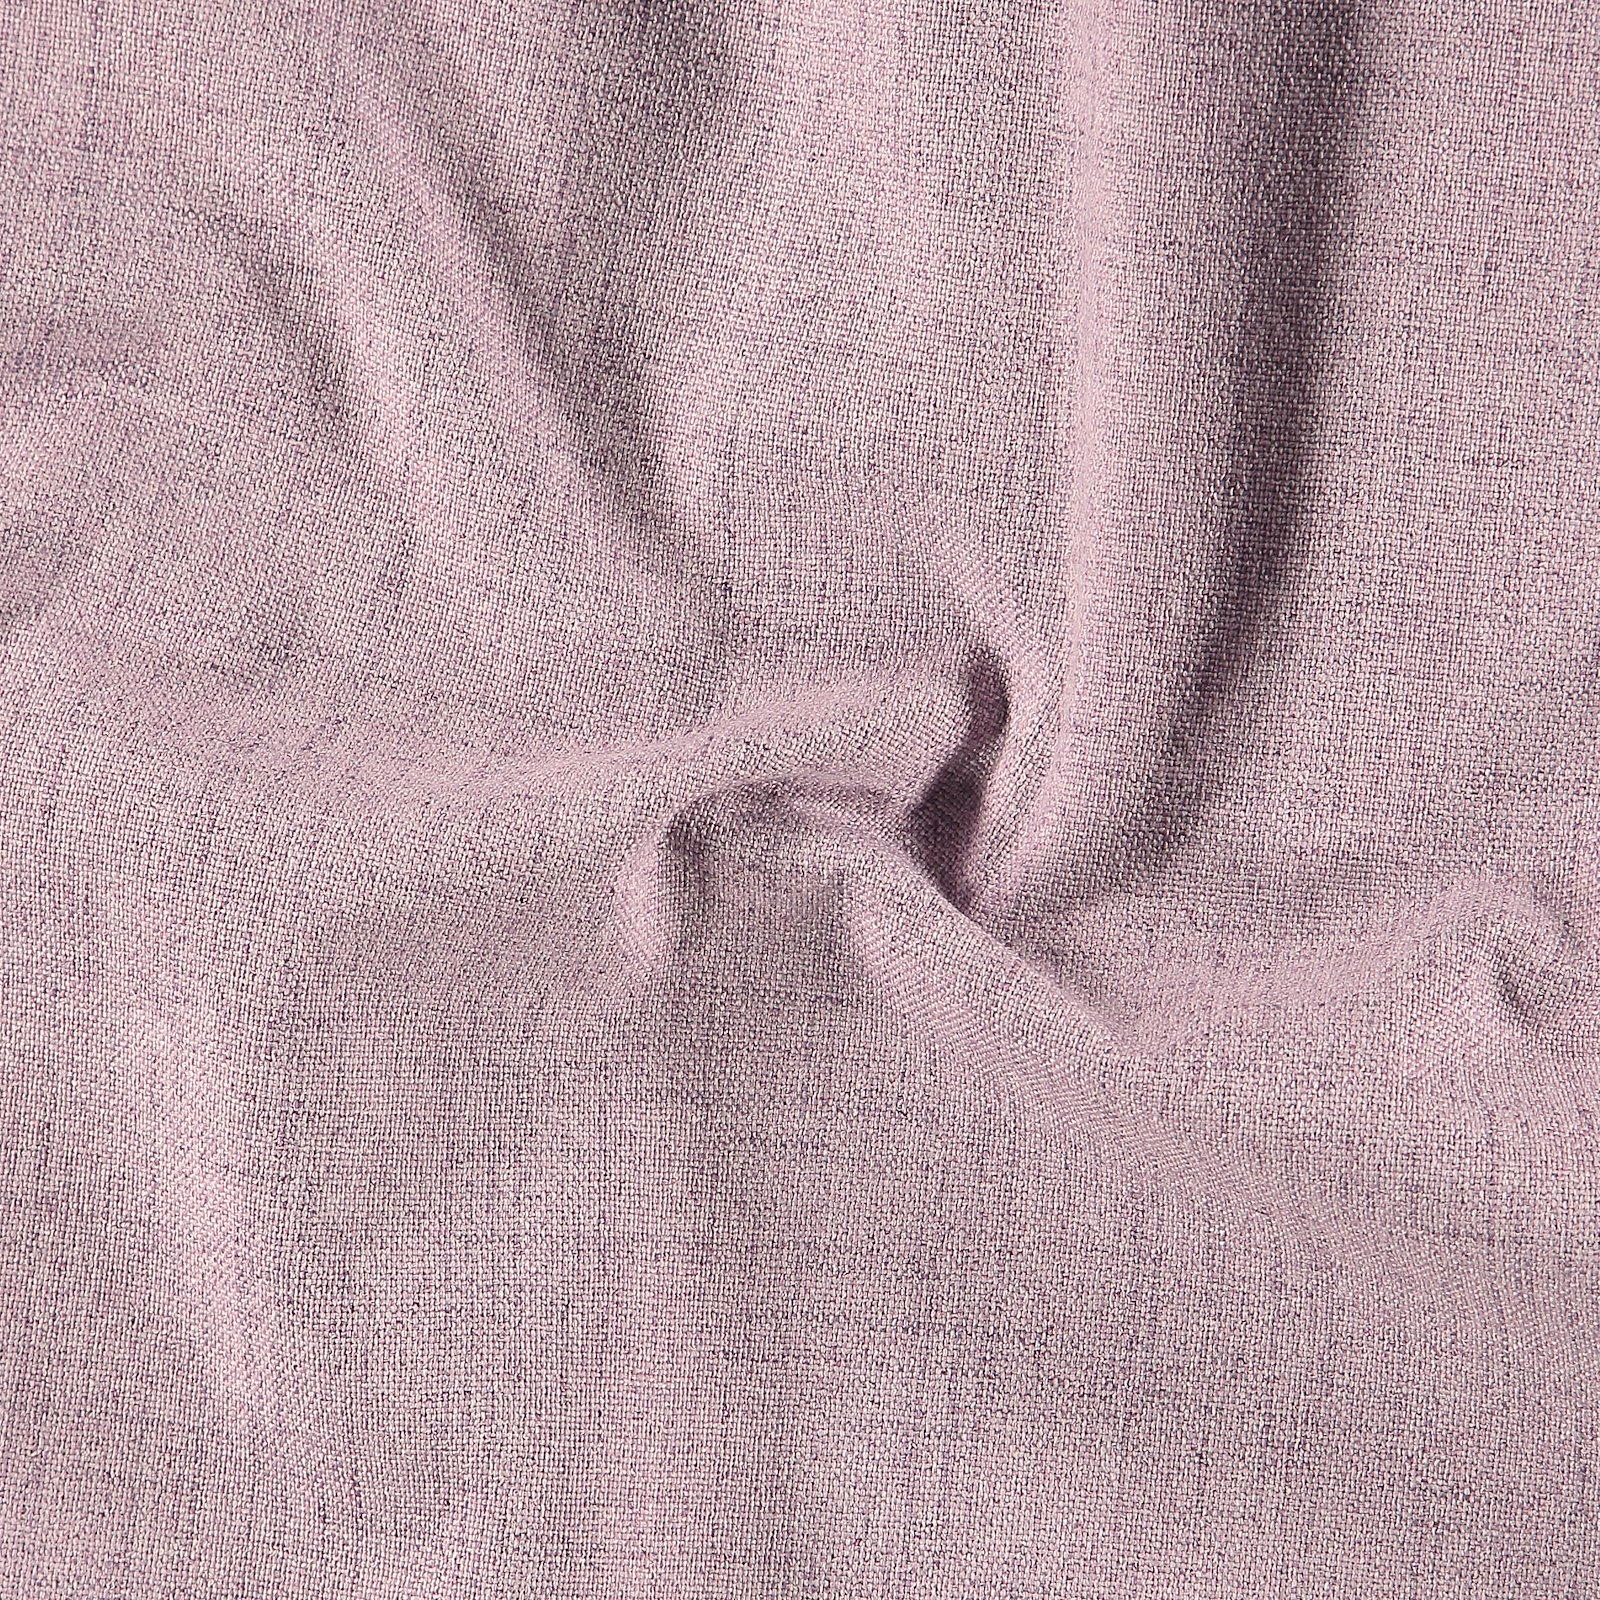 Upholstery fabric w/backing dusty violet 824051_pack